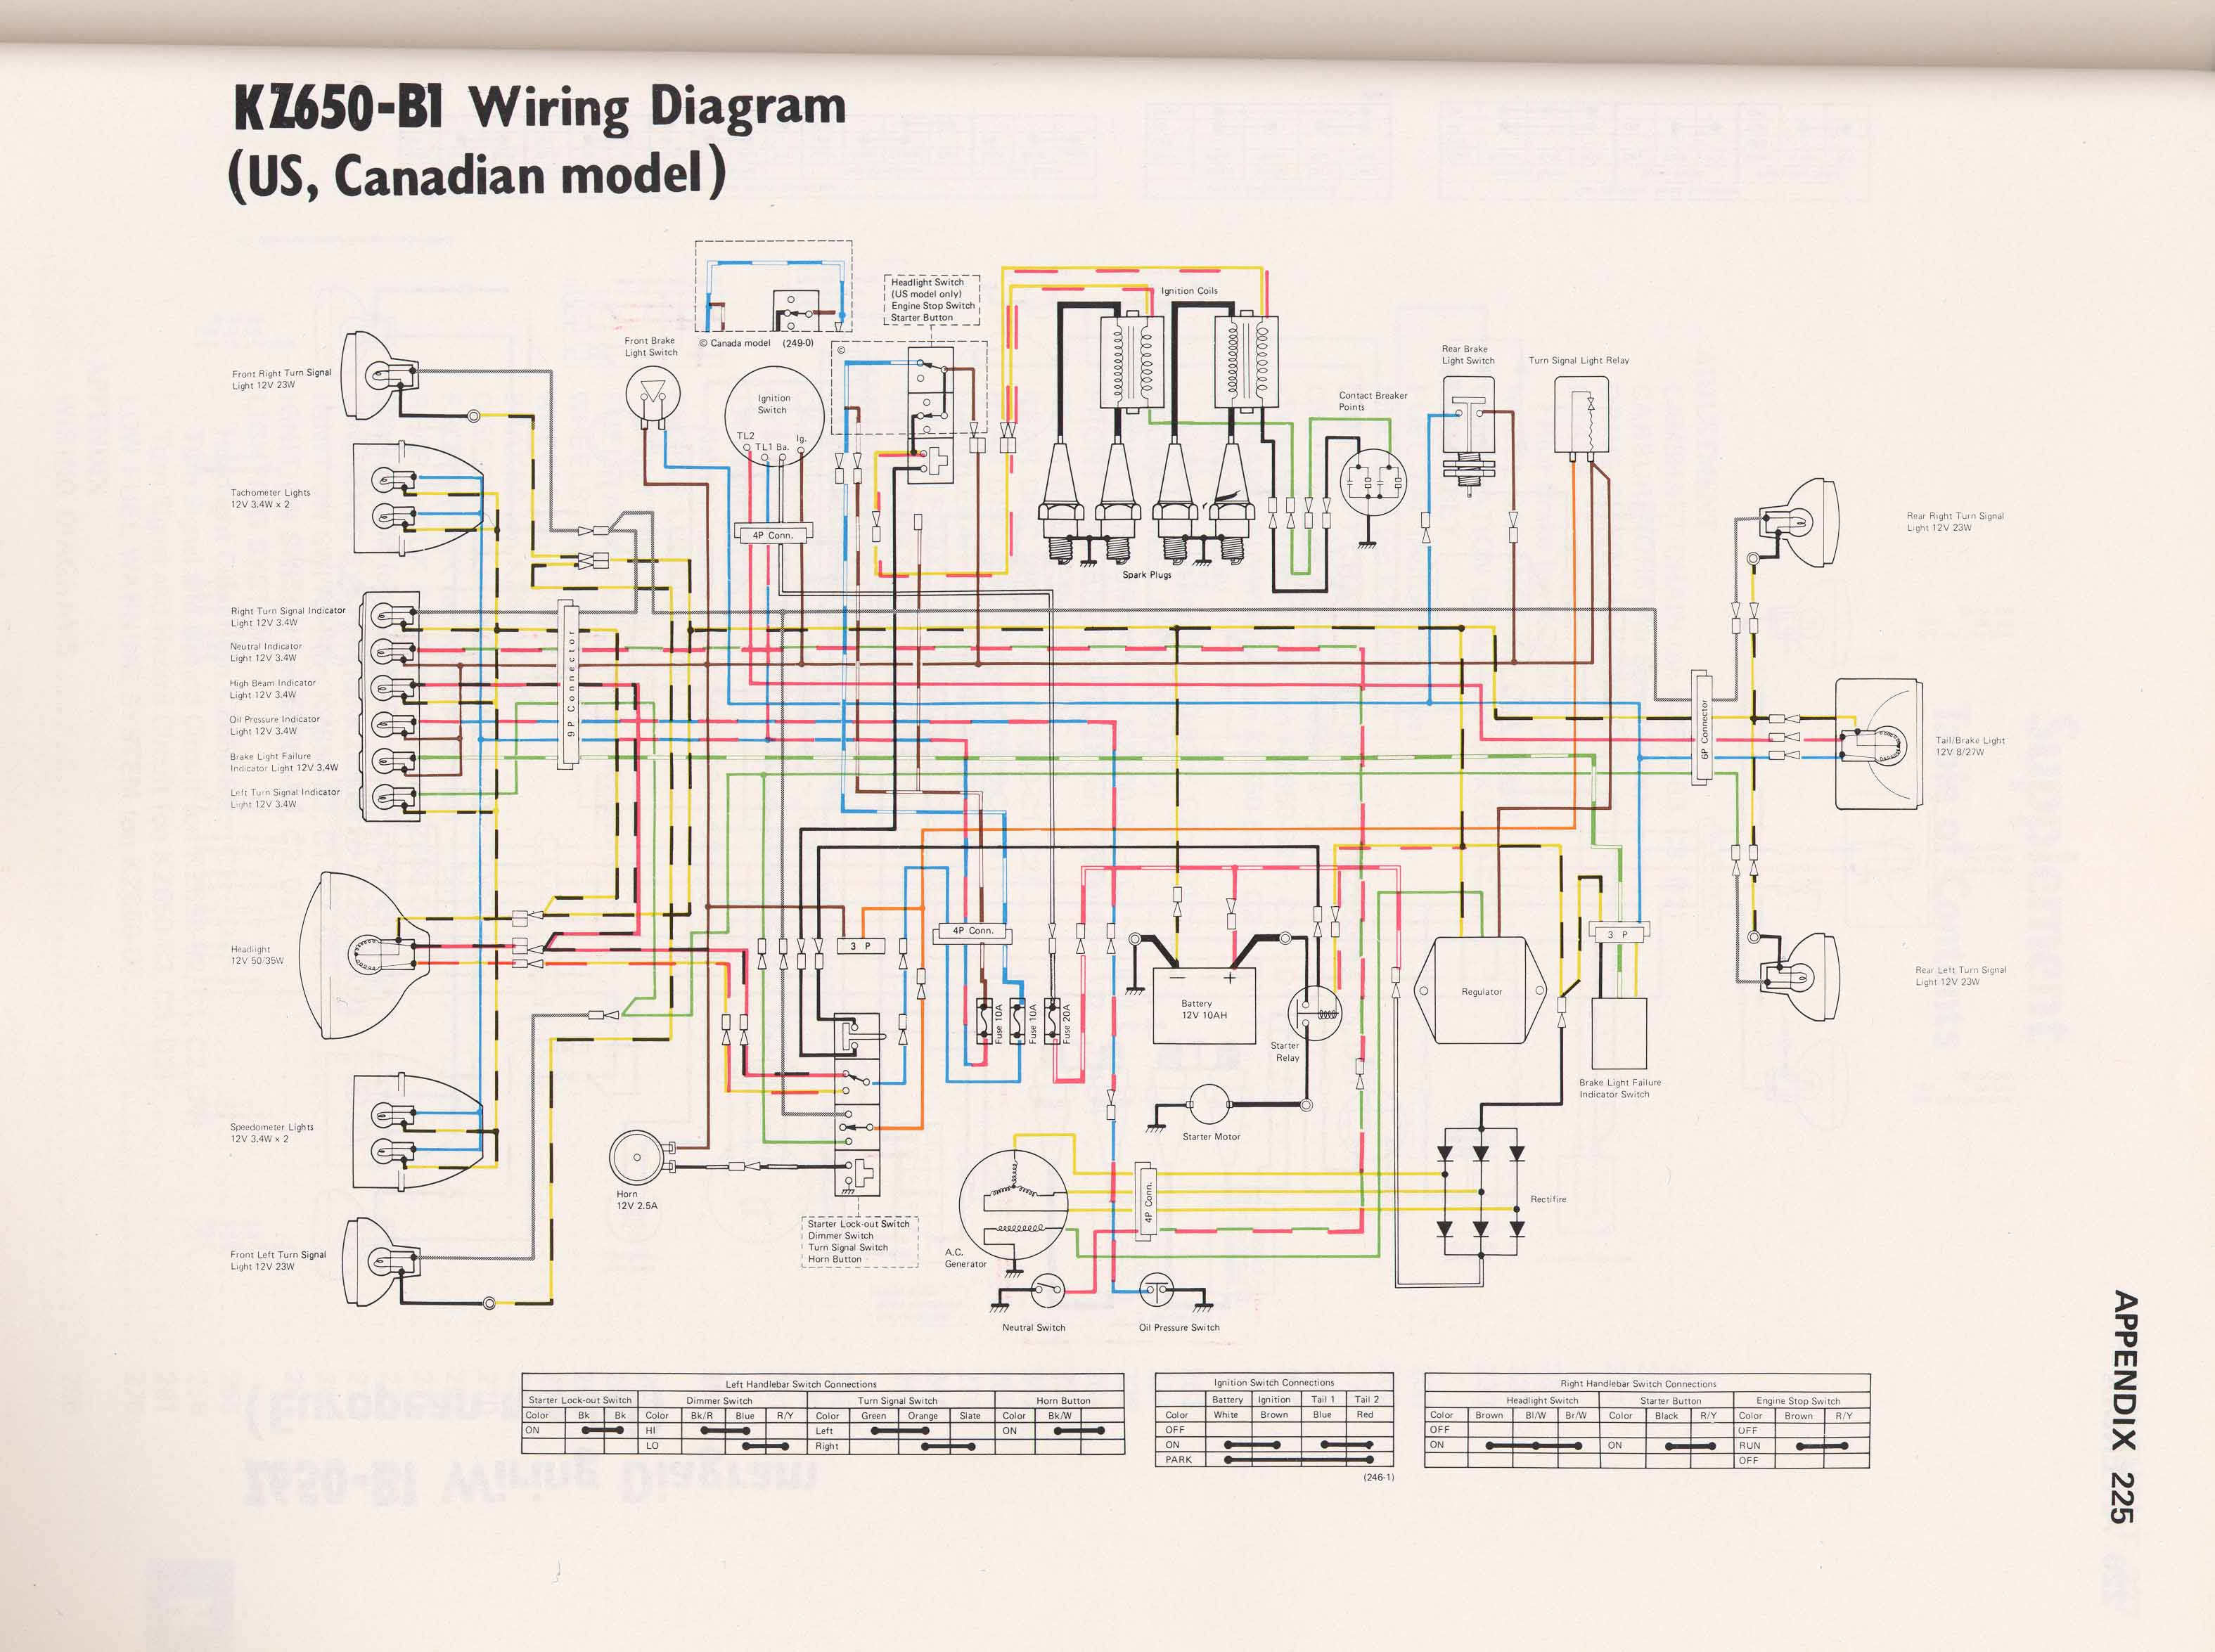 cycle country wiring diagram wiring library Bazzaz Wiring Diagram kz650 wiring diagrams